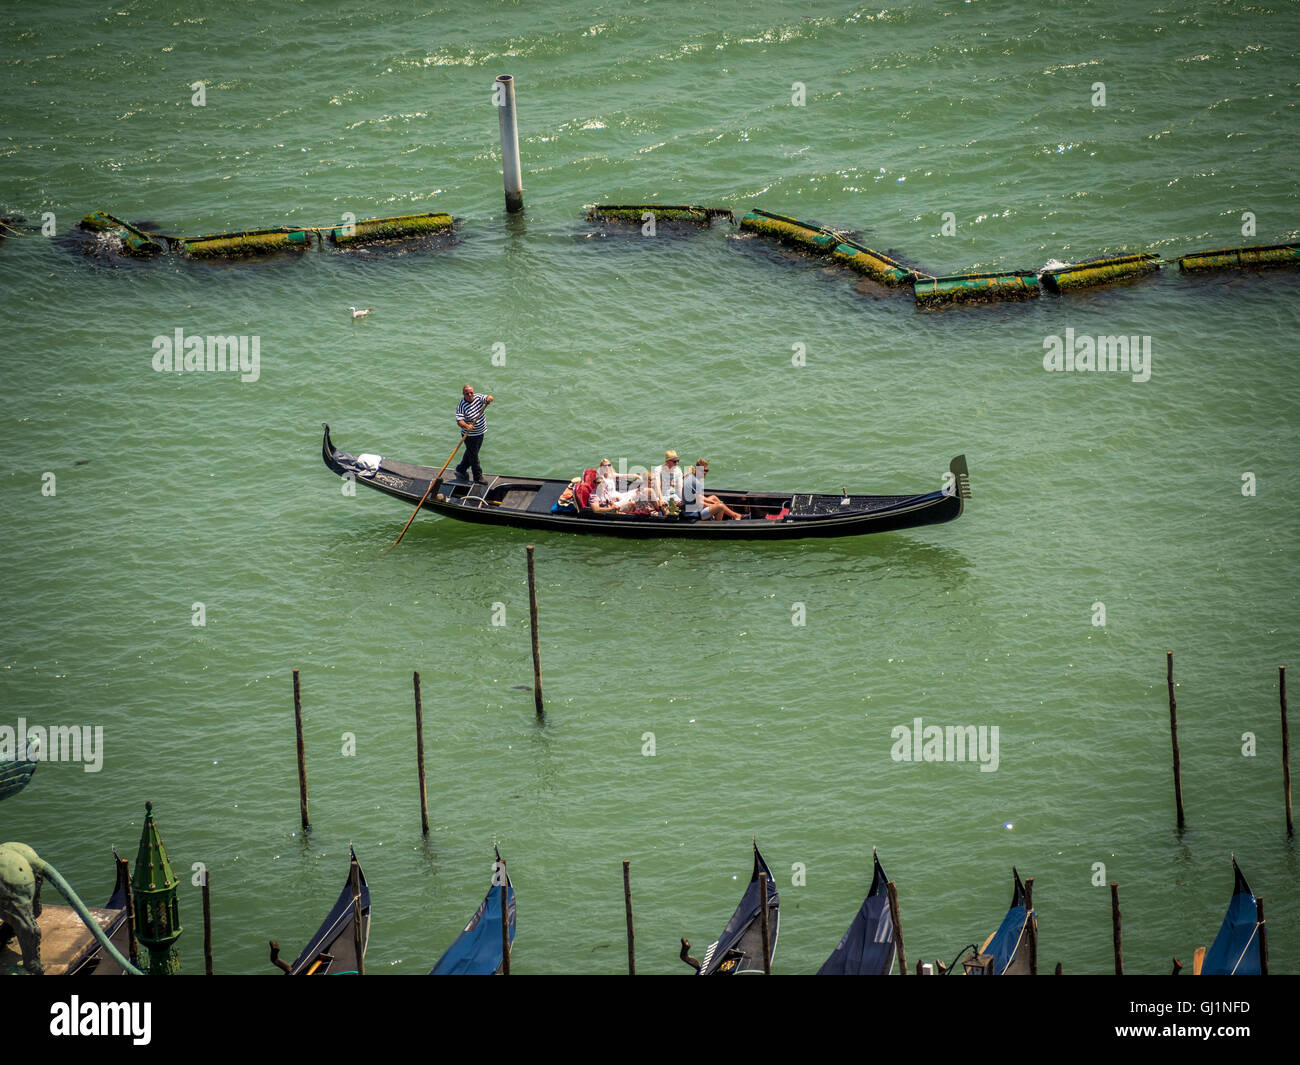 Gondola with gondolier and passengers in St Mark's Basin, Venice, Italy. - Stock Image